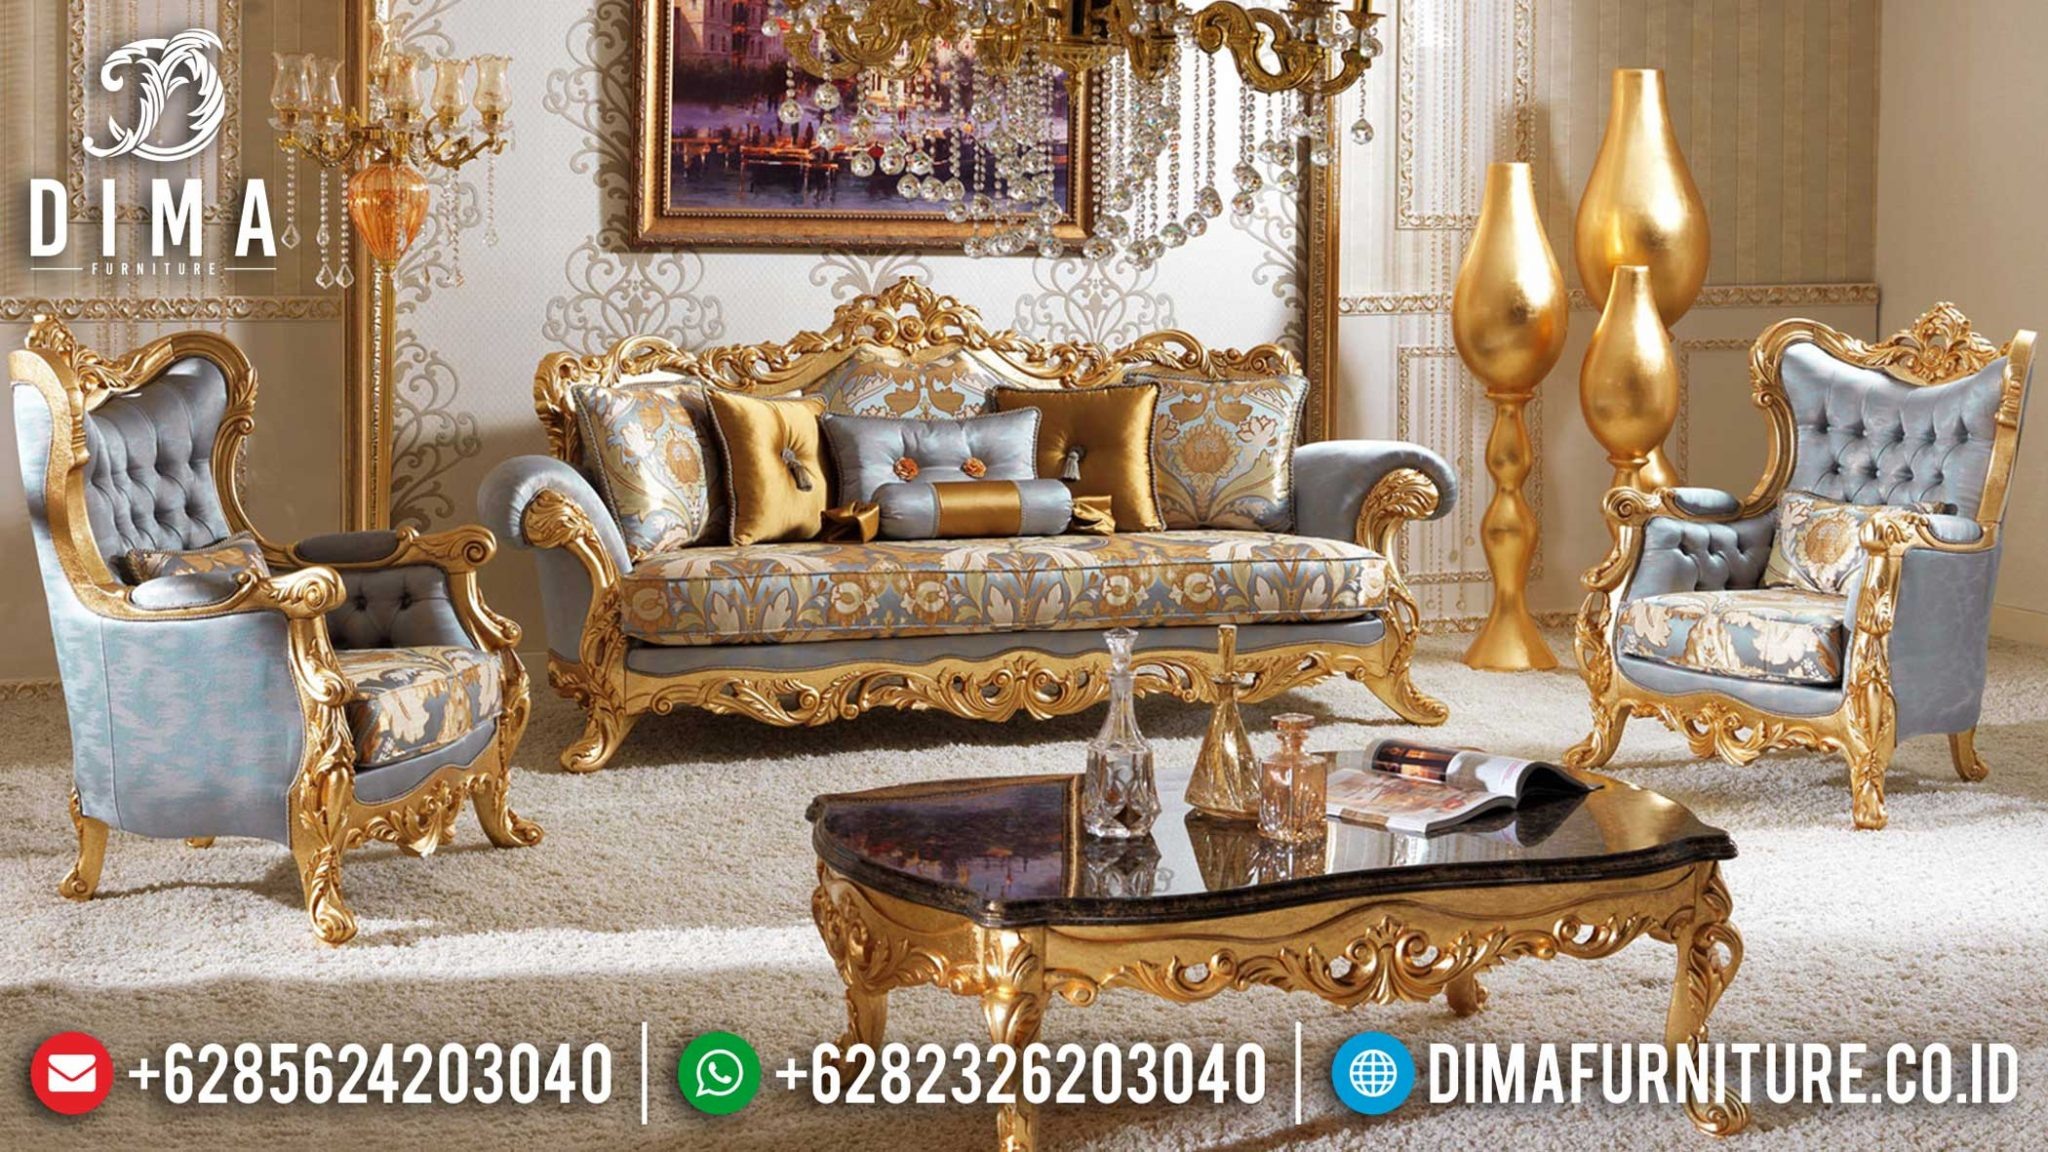 Best Seller Sofa Tamu Mewah Jepara Golden Philadelphia Version TTJ-0983